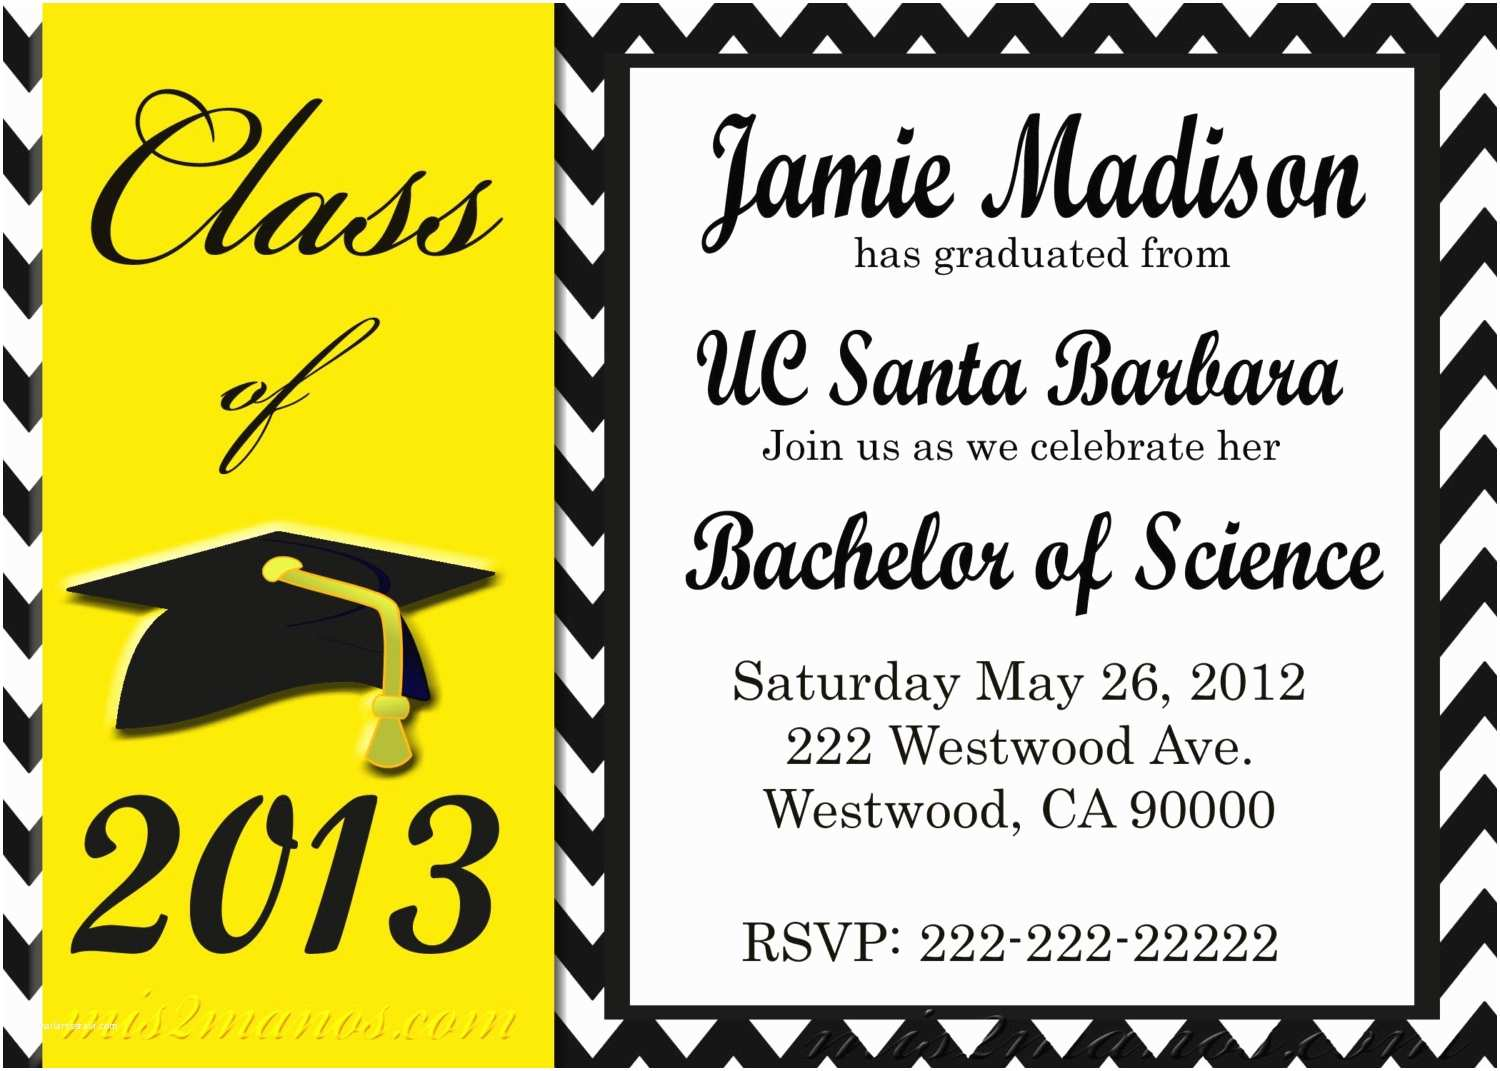 Graduation Party Invitations Tips Easy to Create Graduation Party Invitations Templates